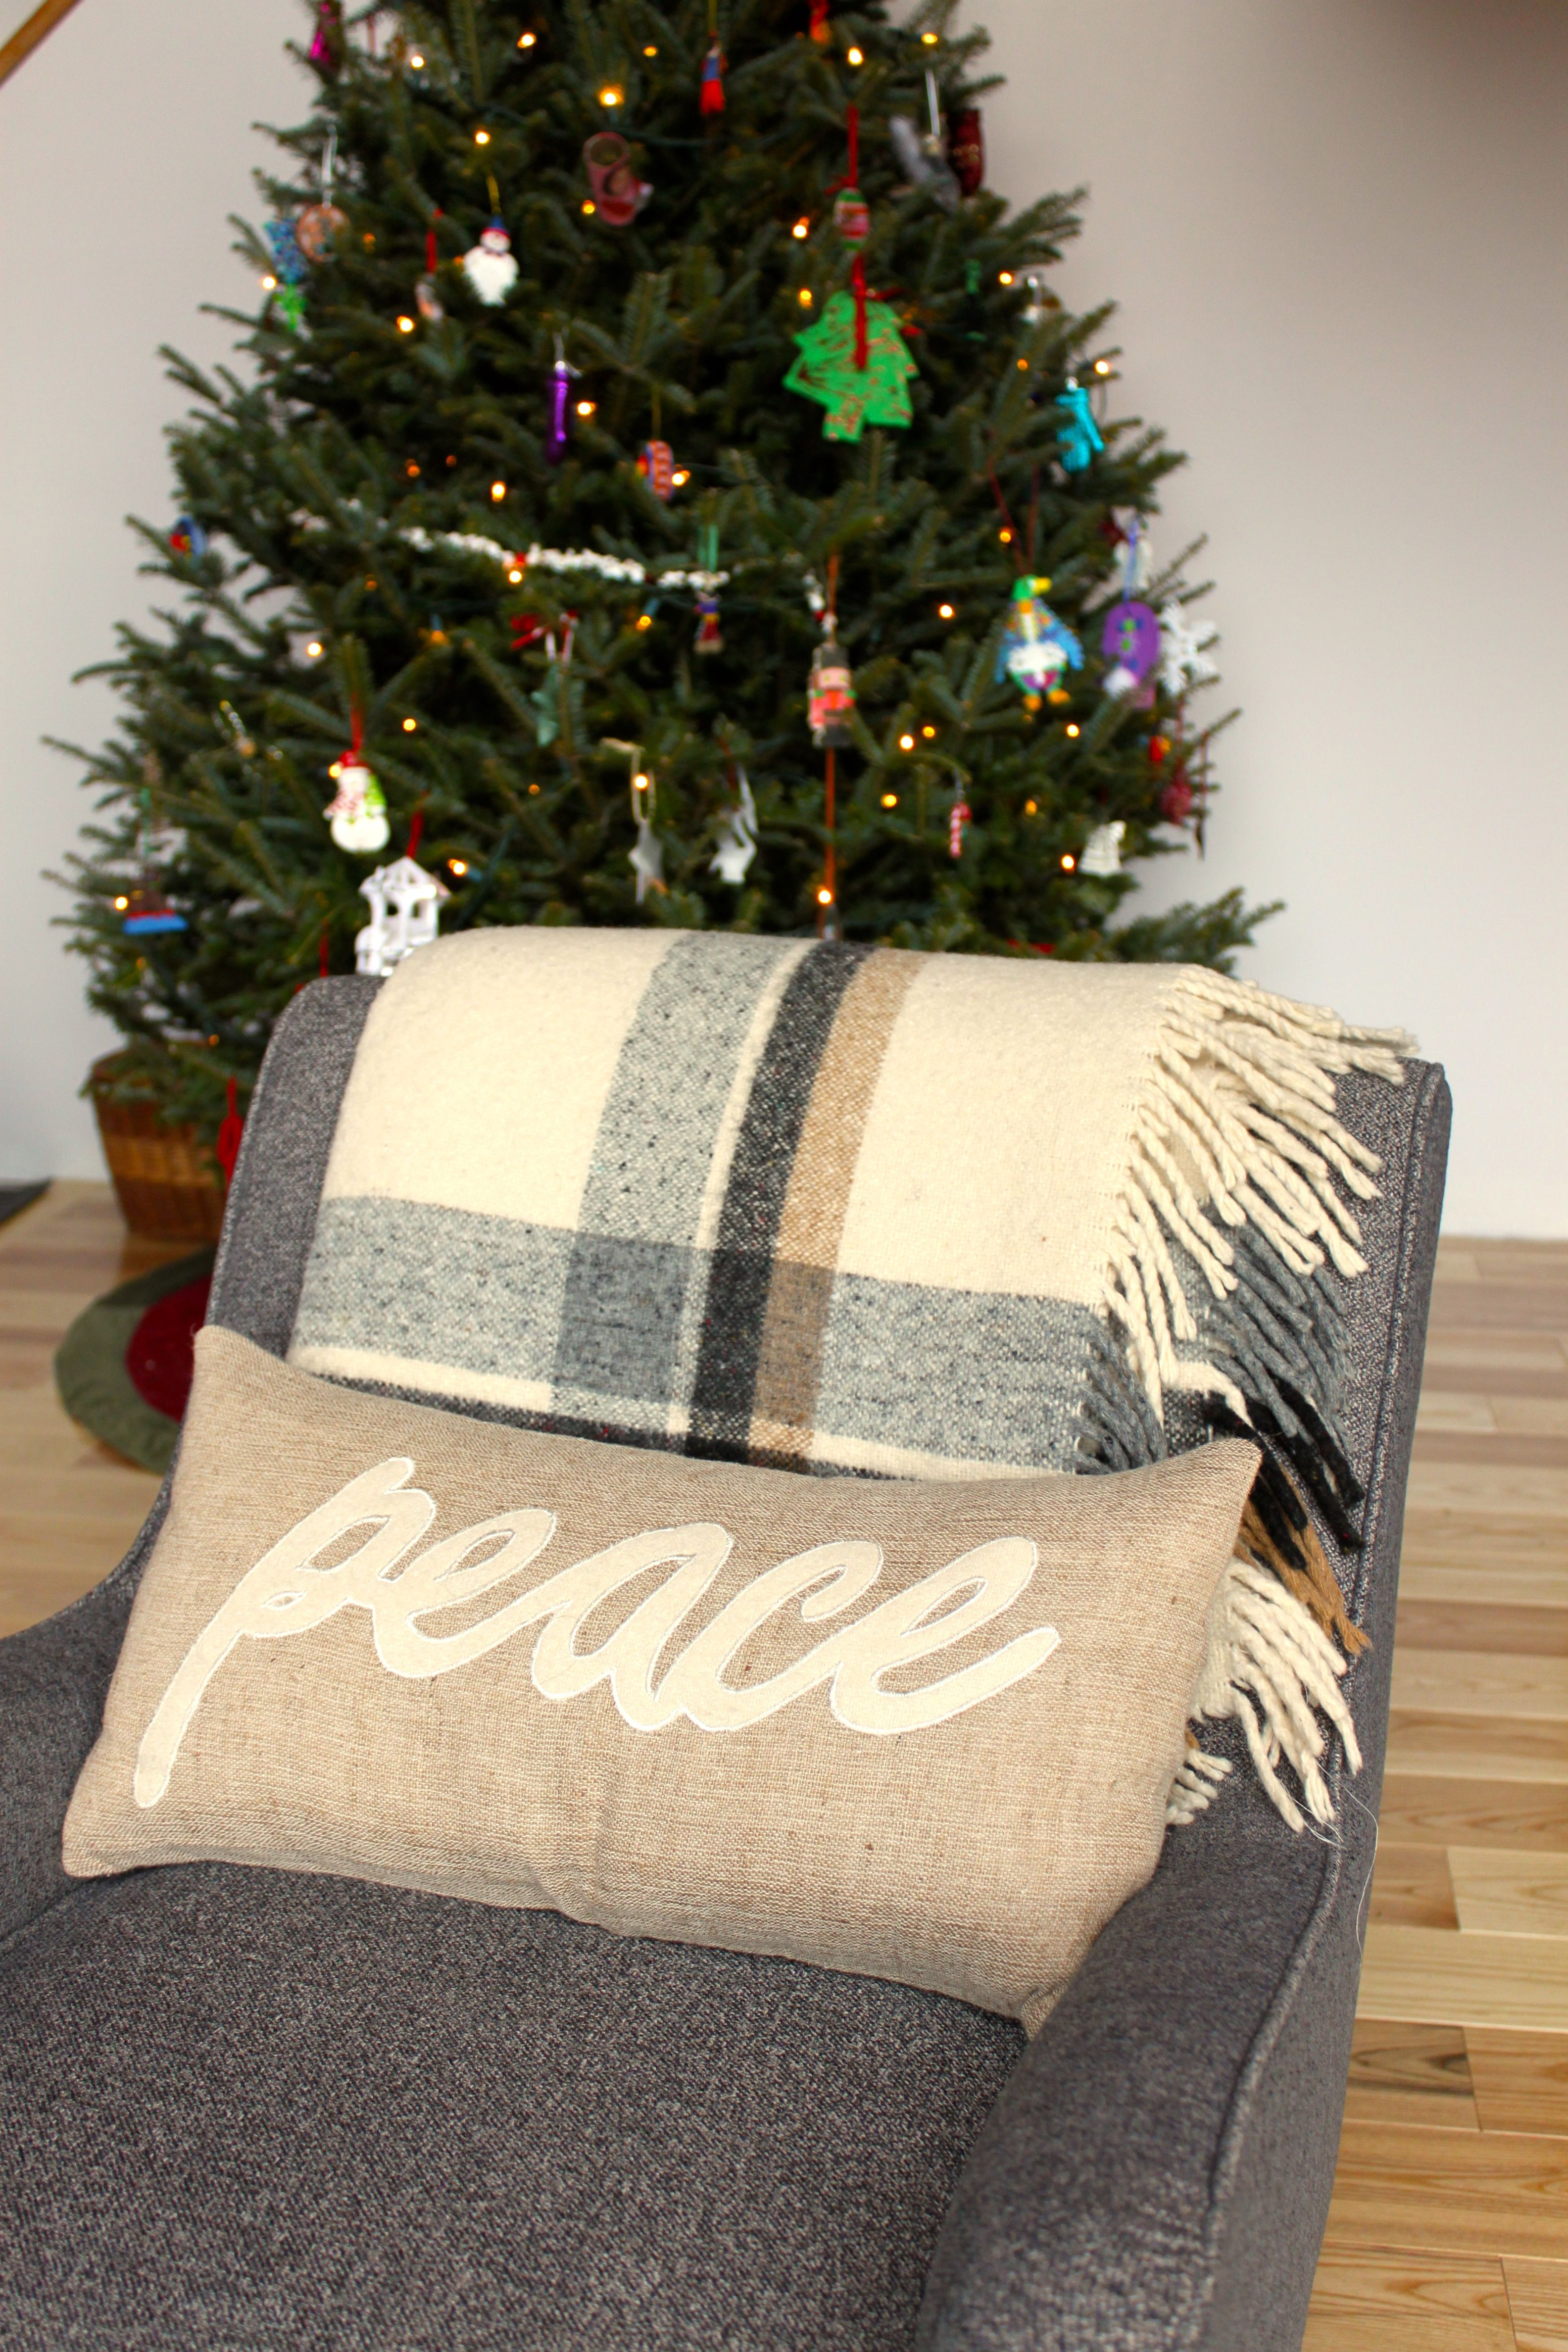 Peace pillow from www.homedecorators.com